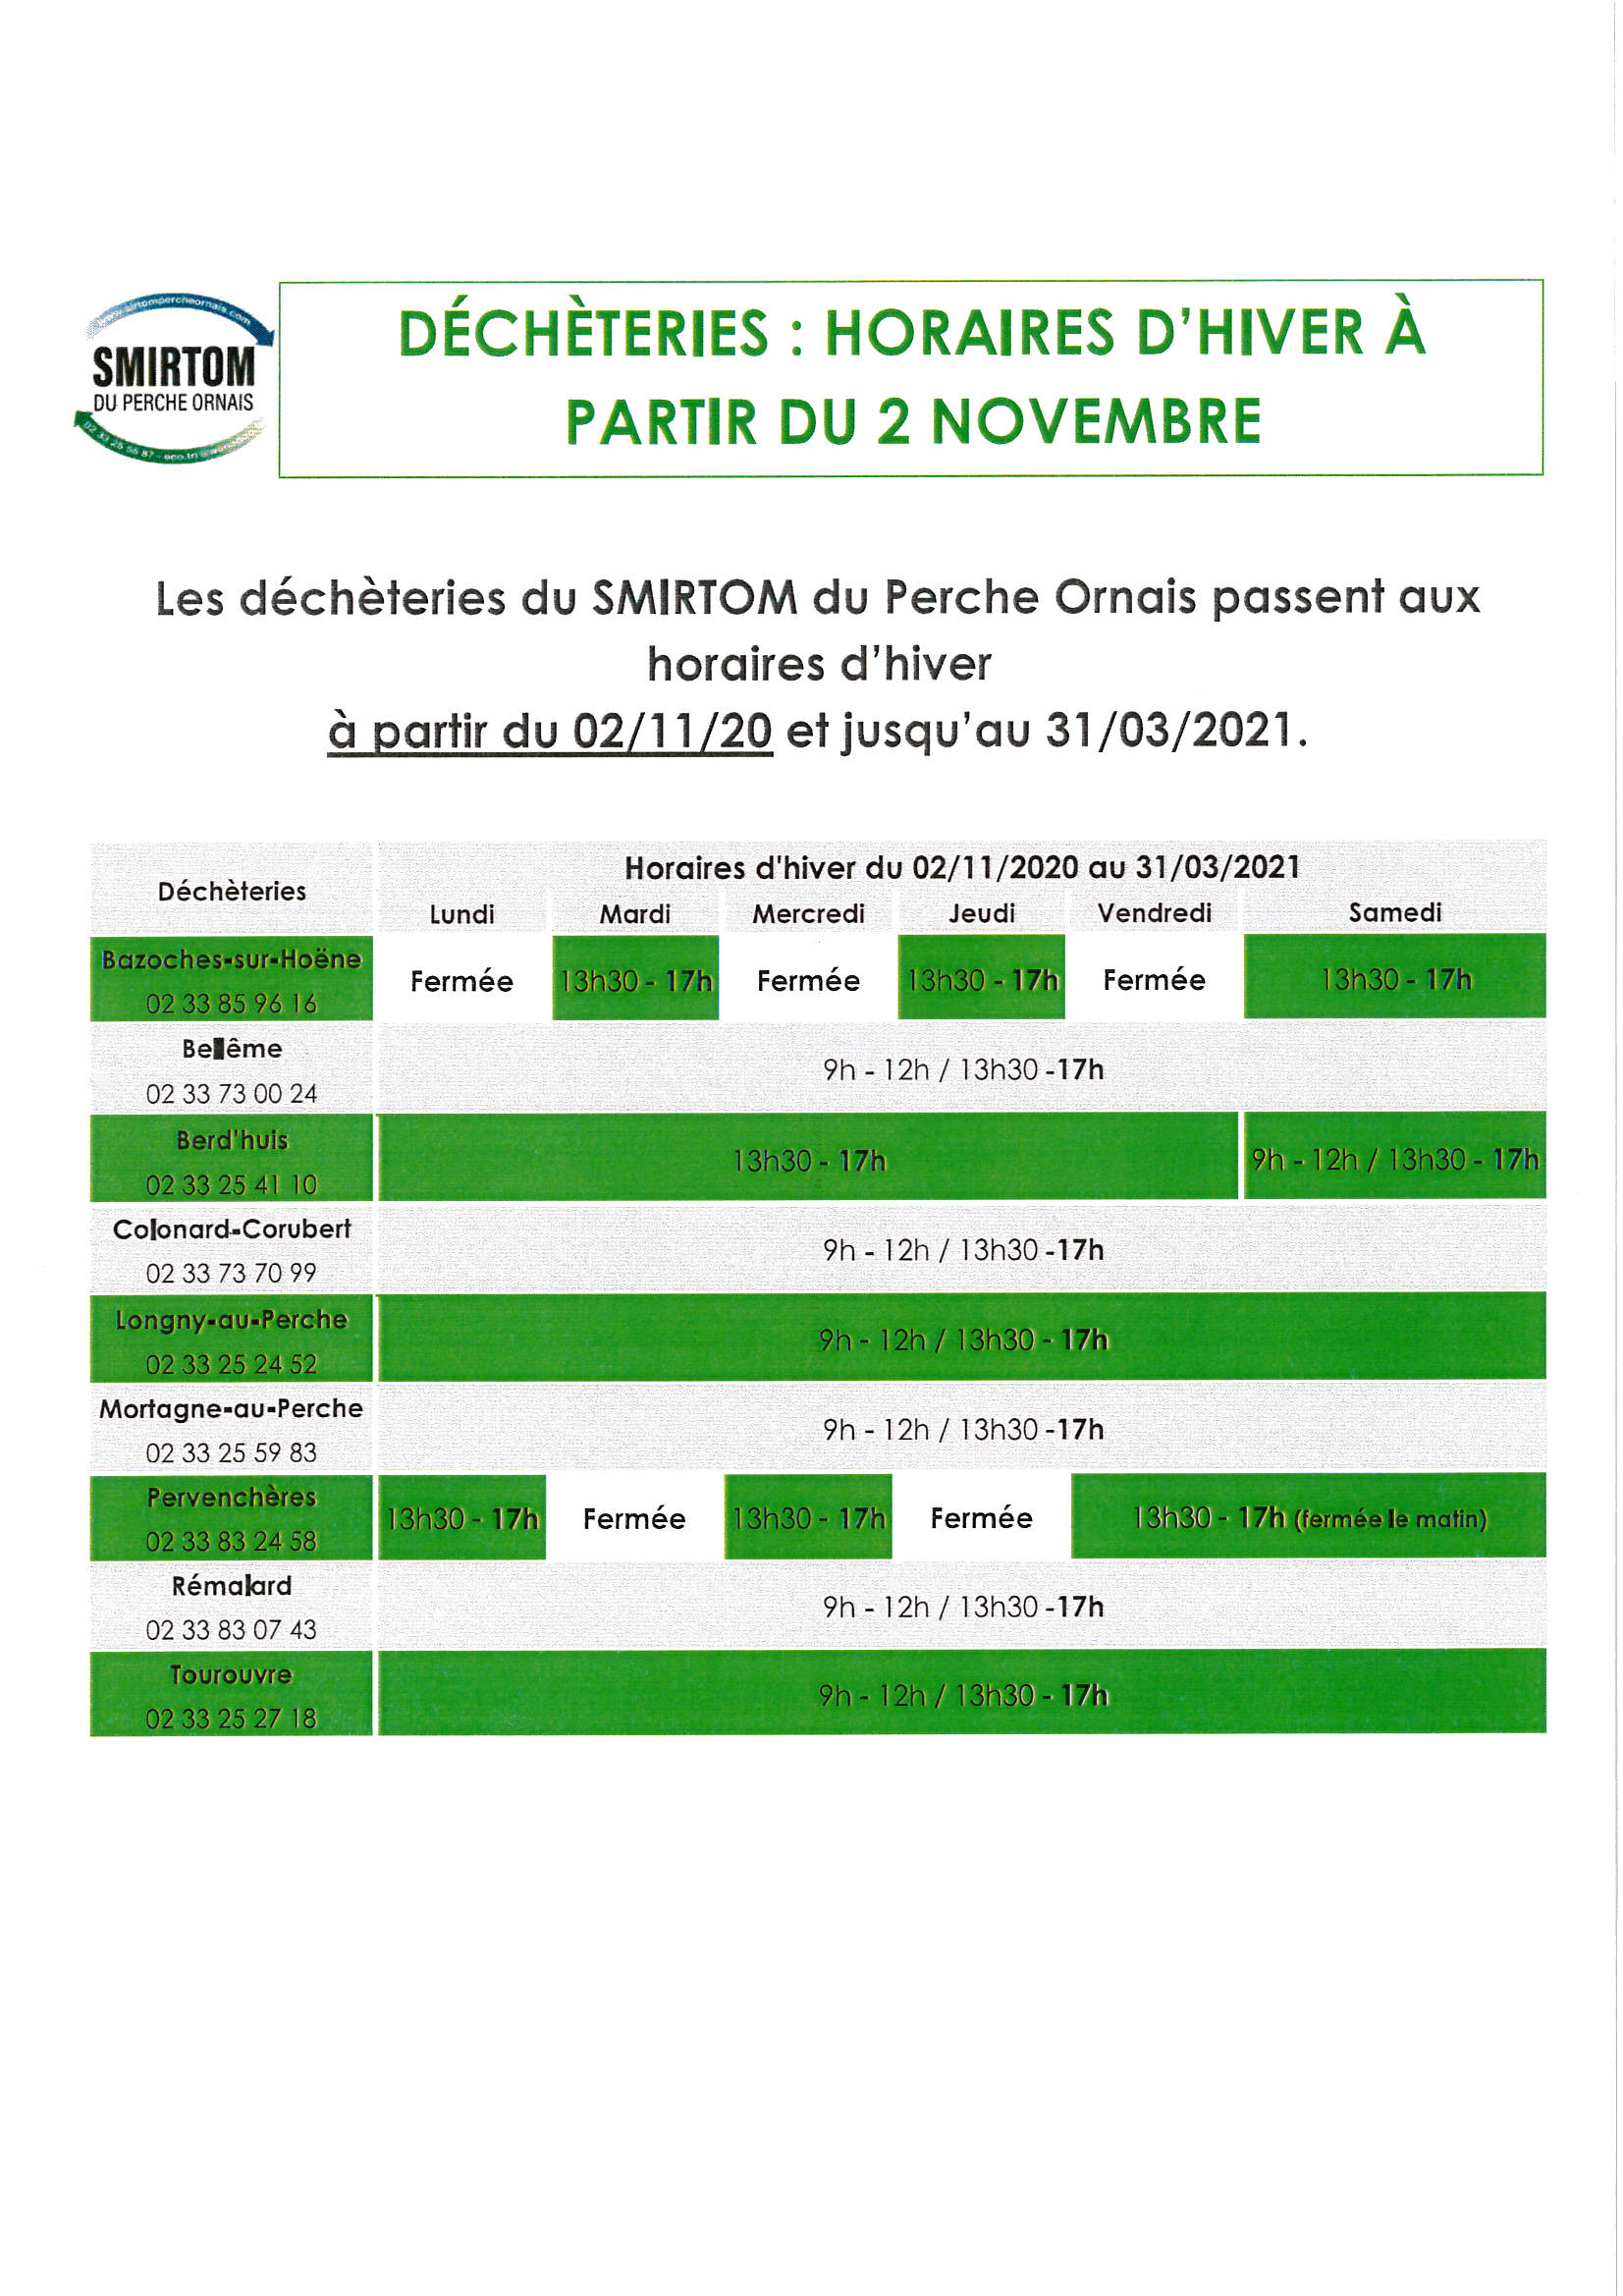 SIRTOM HORAIRE HIVER